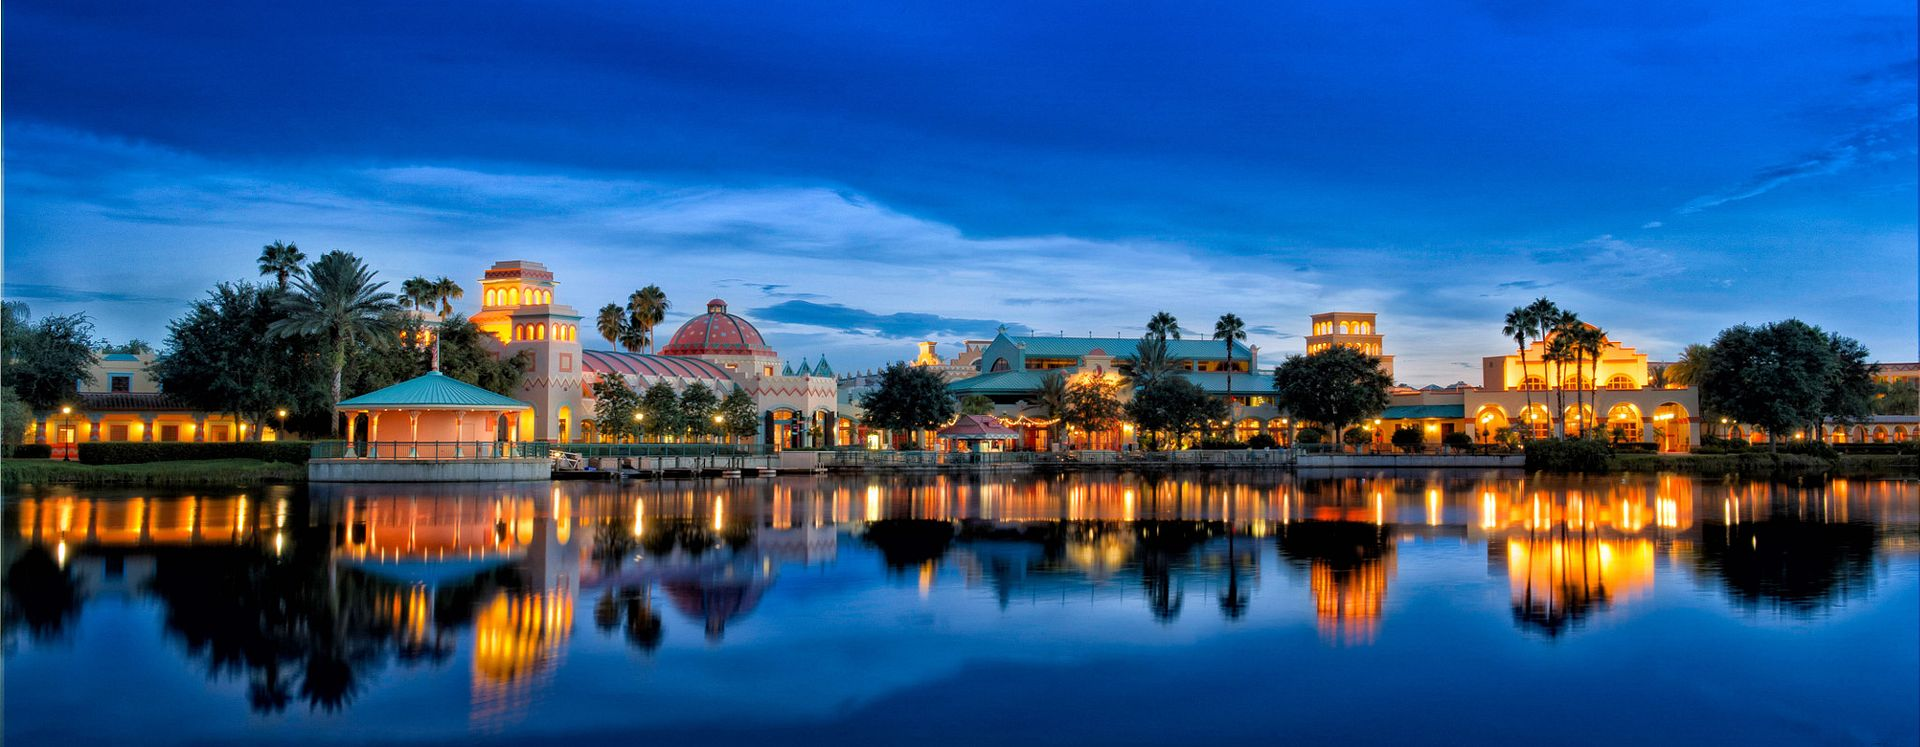 Disney's Coronado Springs Resort exterior at night